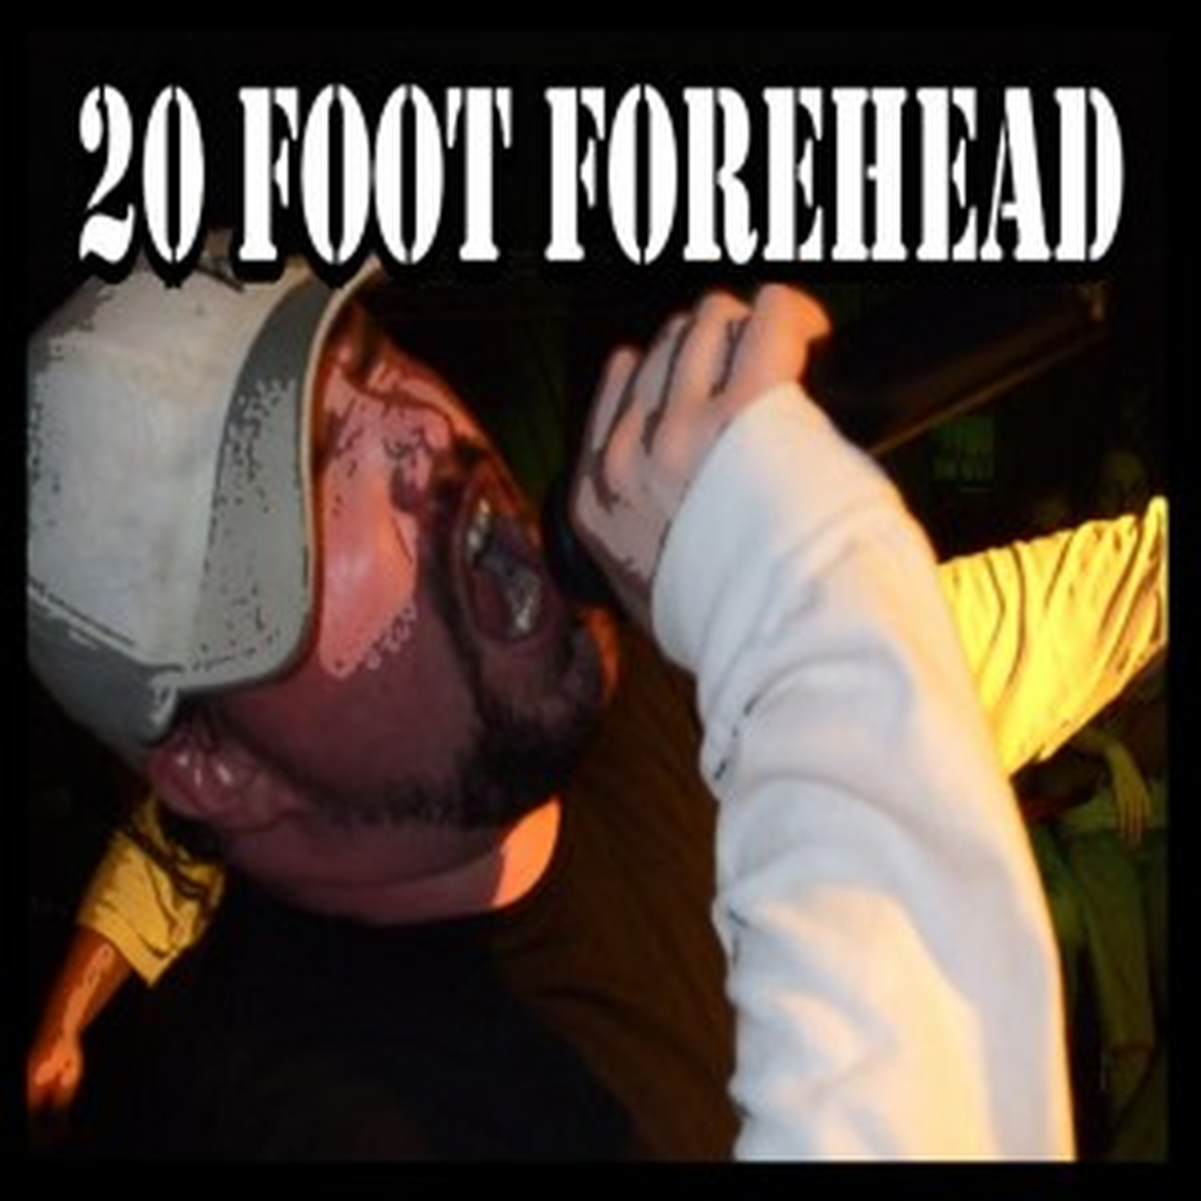 20 Foot Forehead